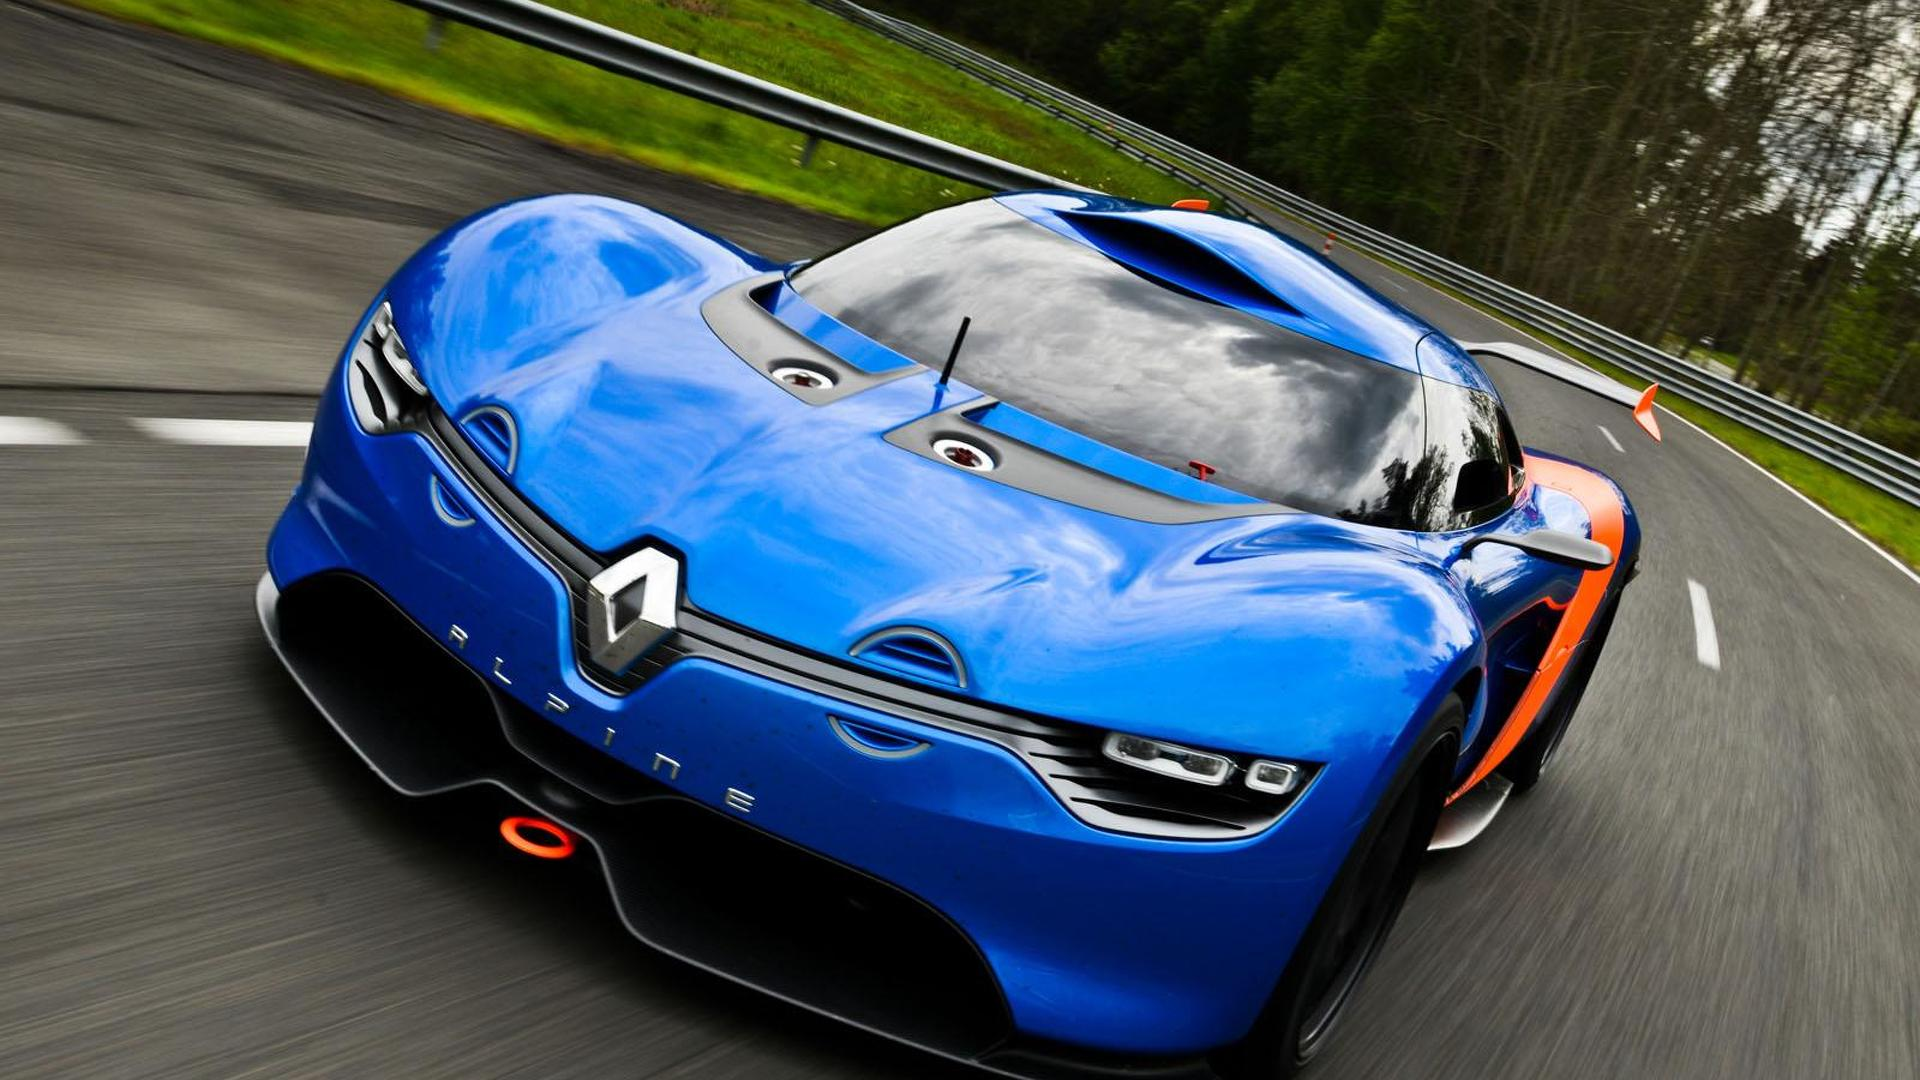 Renault and Caterham confirm collaboration for new Alpine